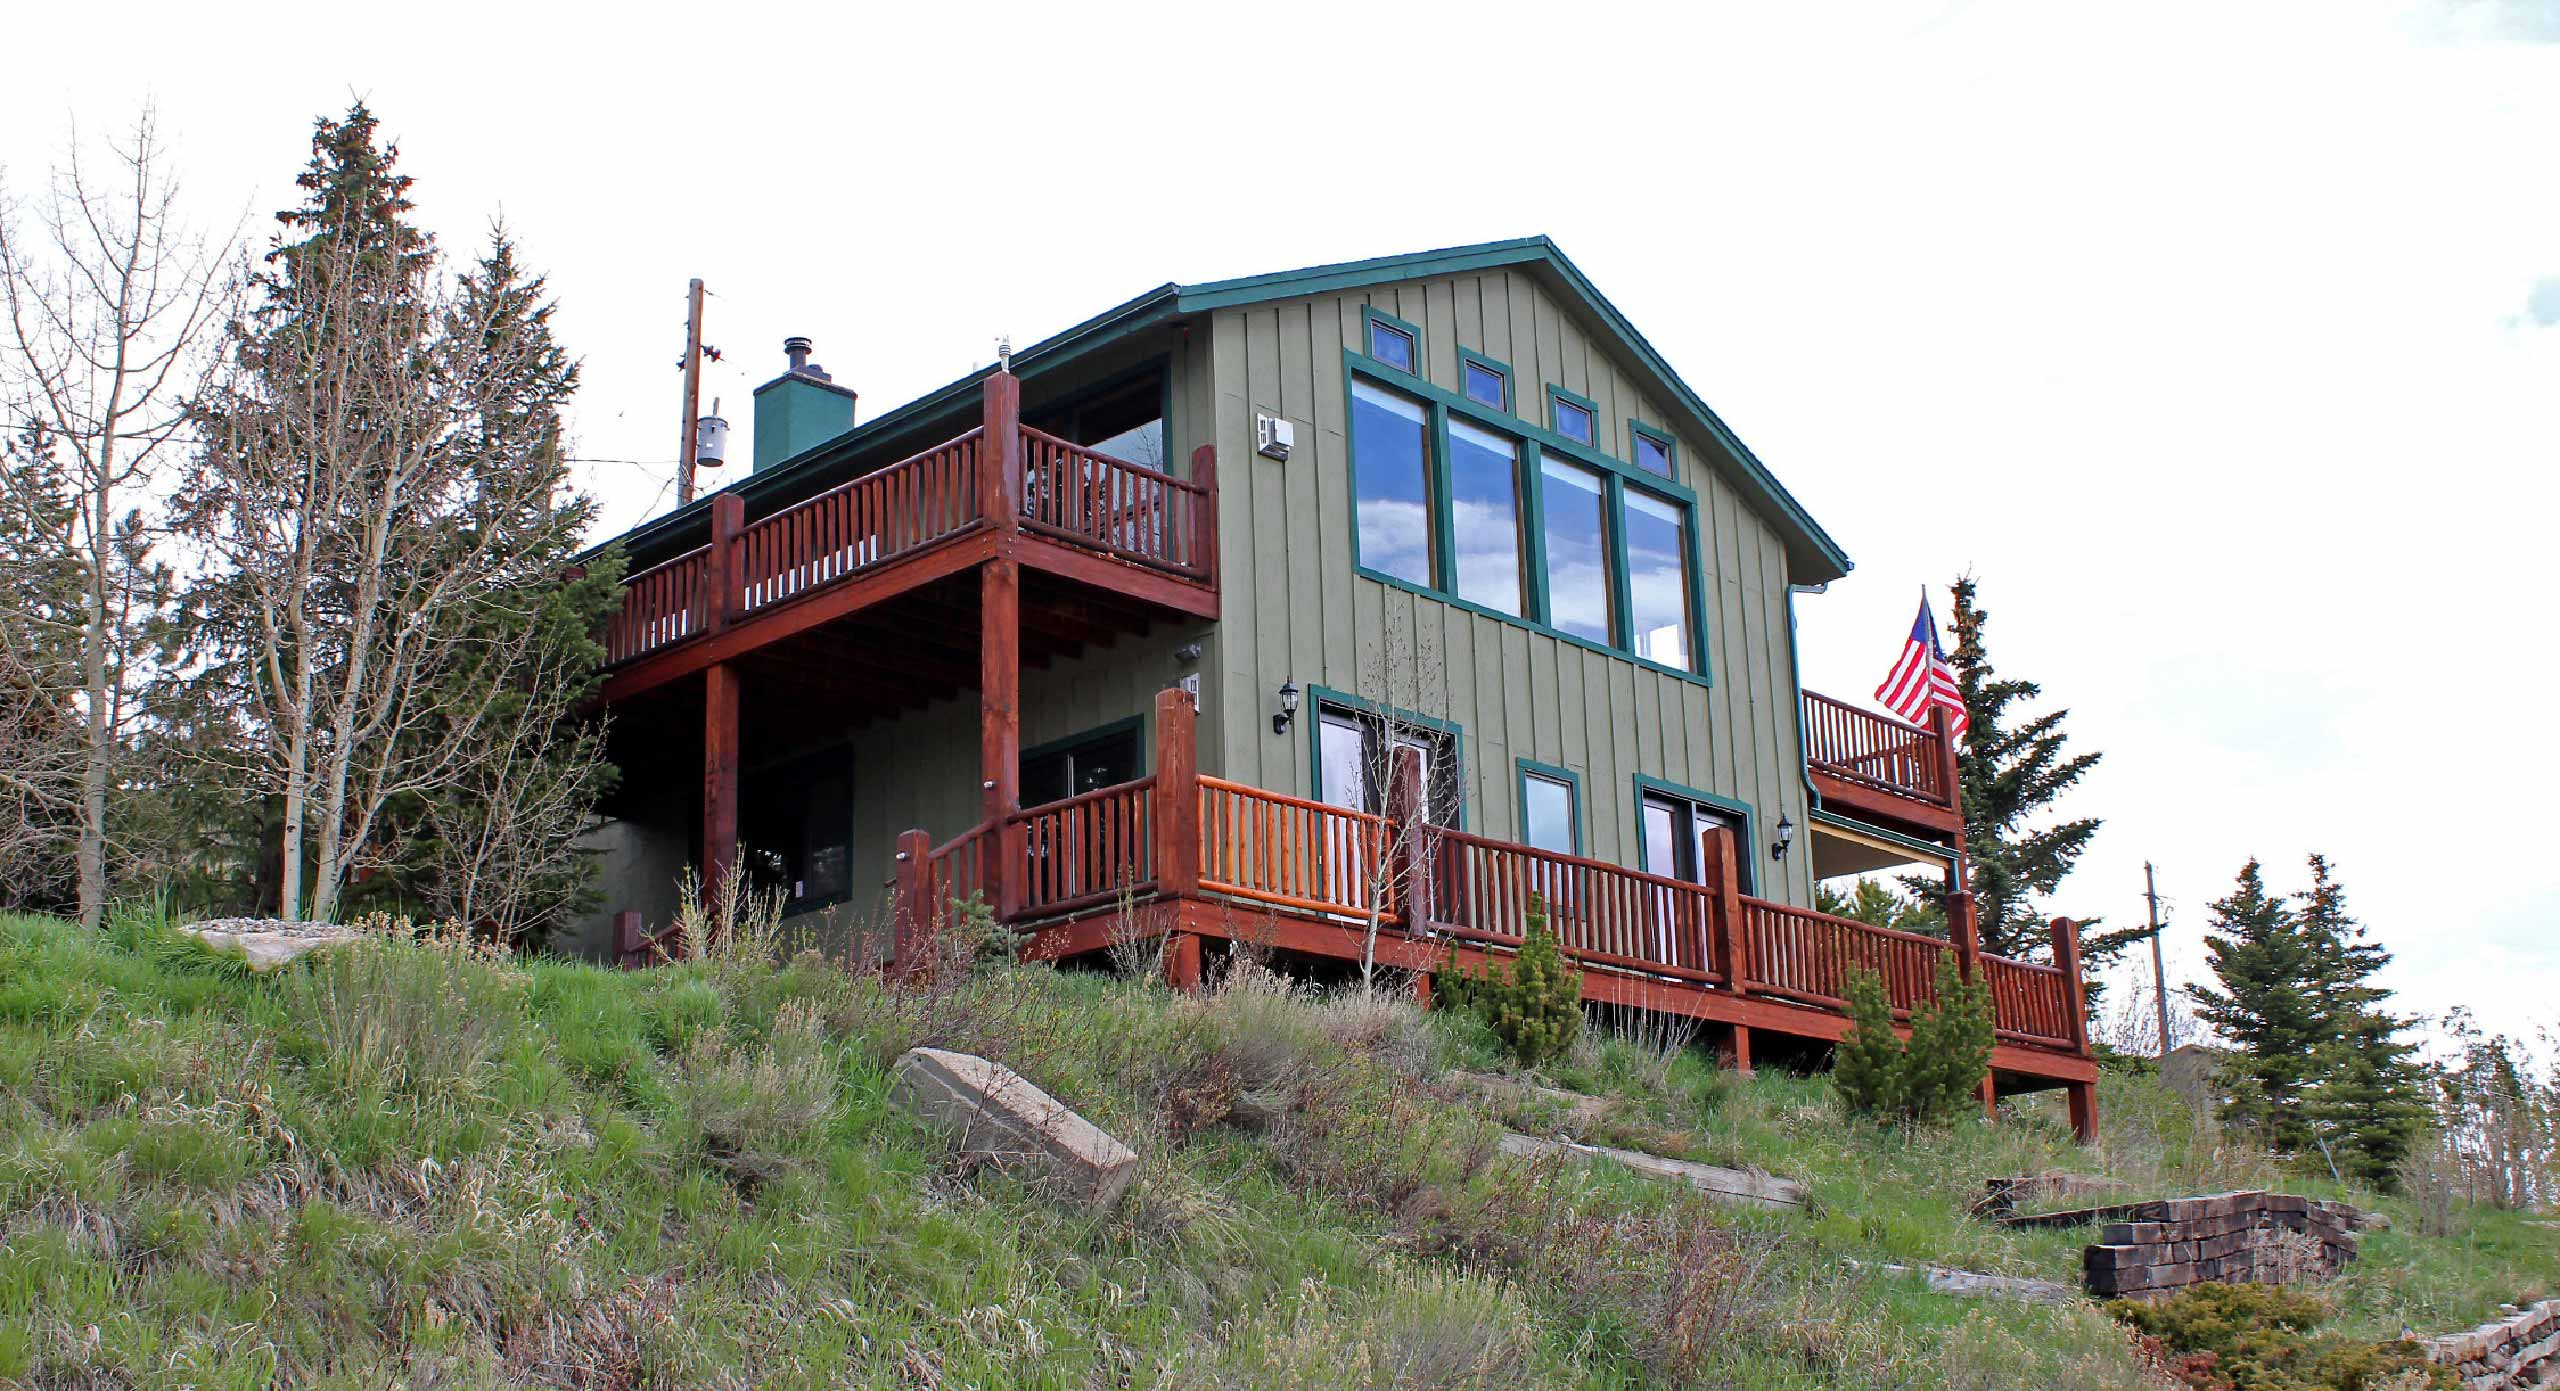 Henry E. Barr & The Barr Team - RE/MAX Properties of the Summit, Frisco, CO